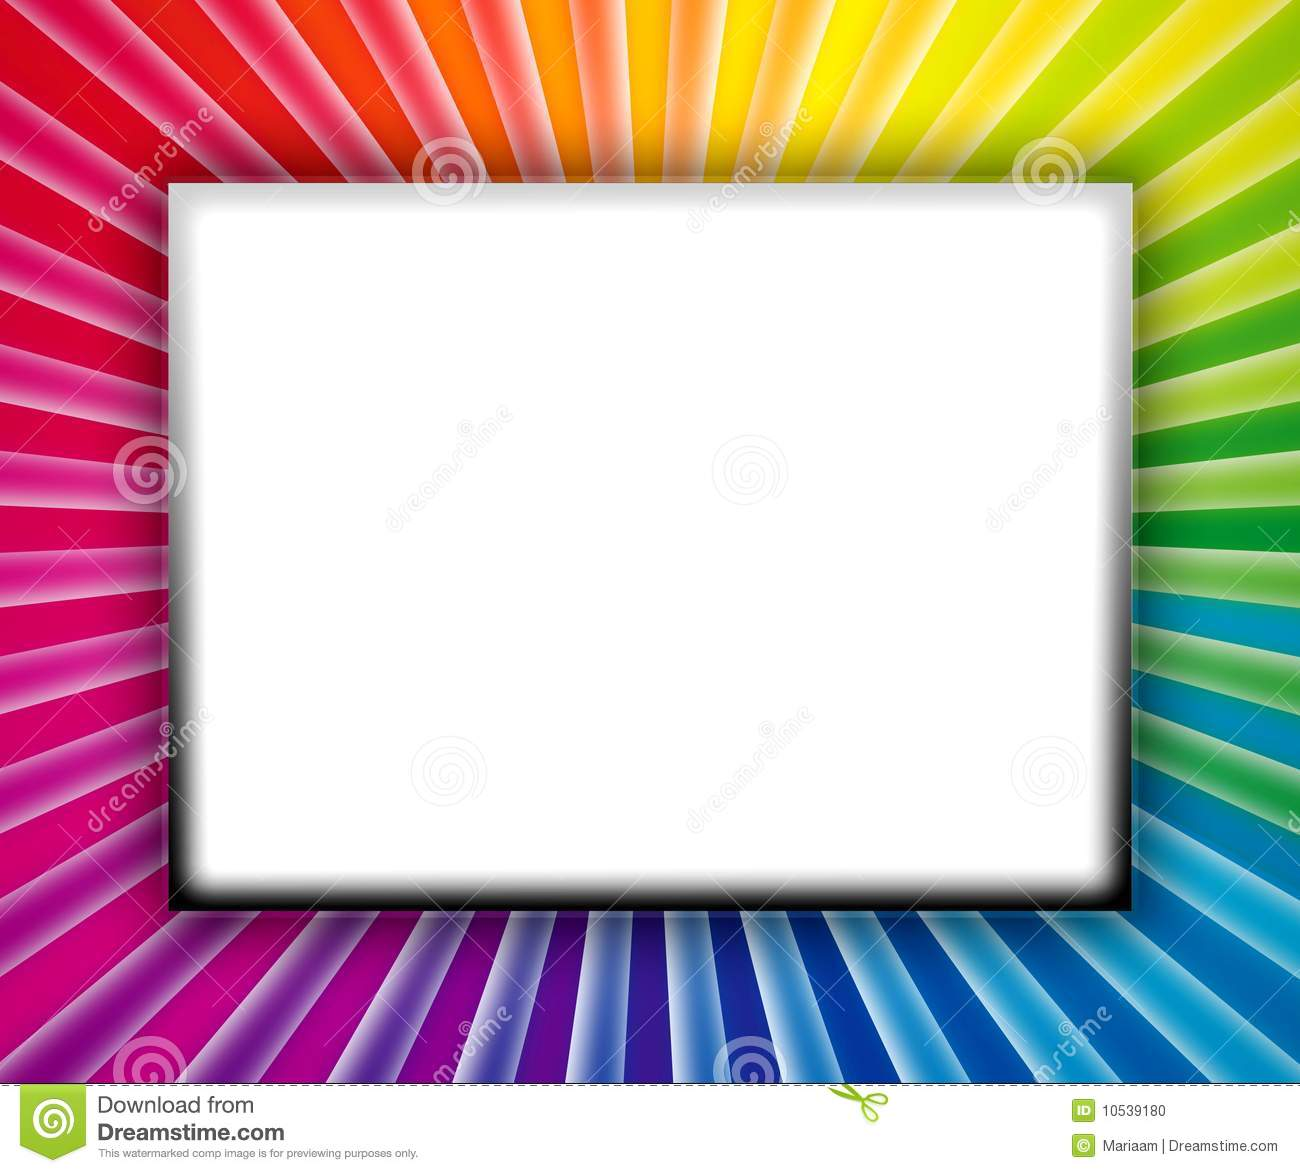 Colorful frame with copy space on white background.